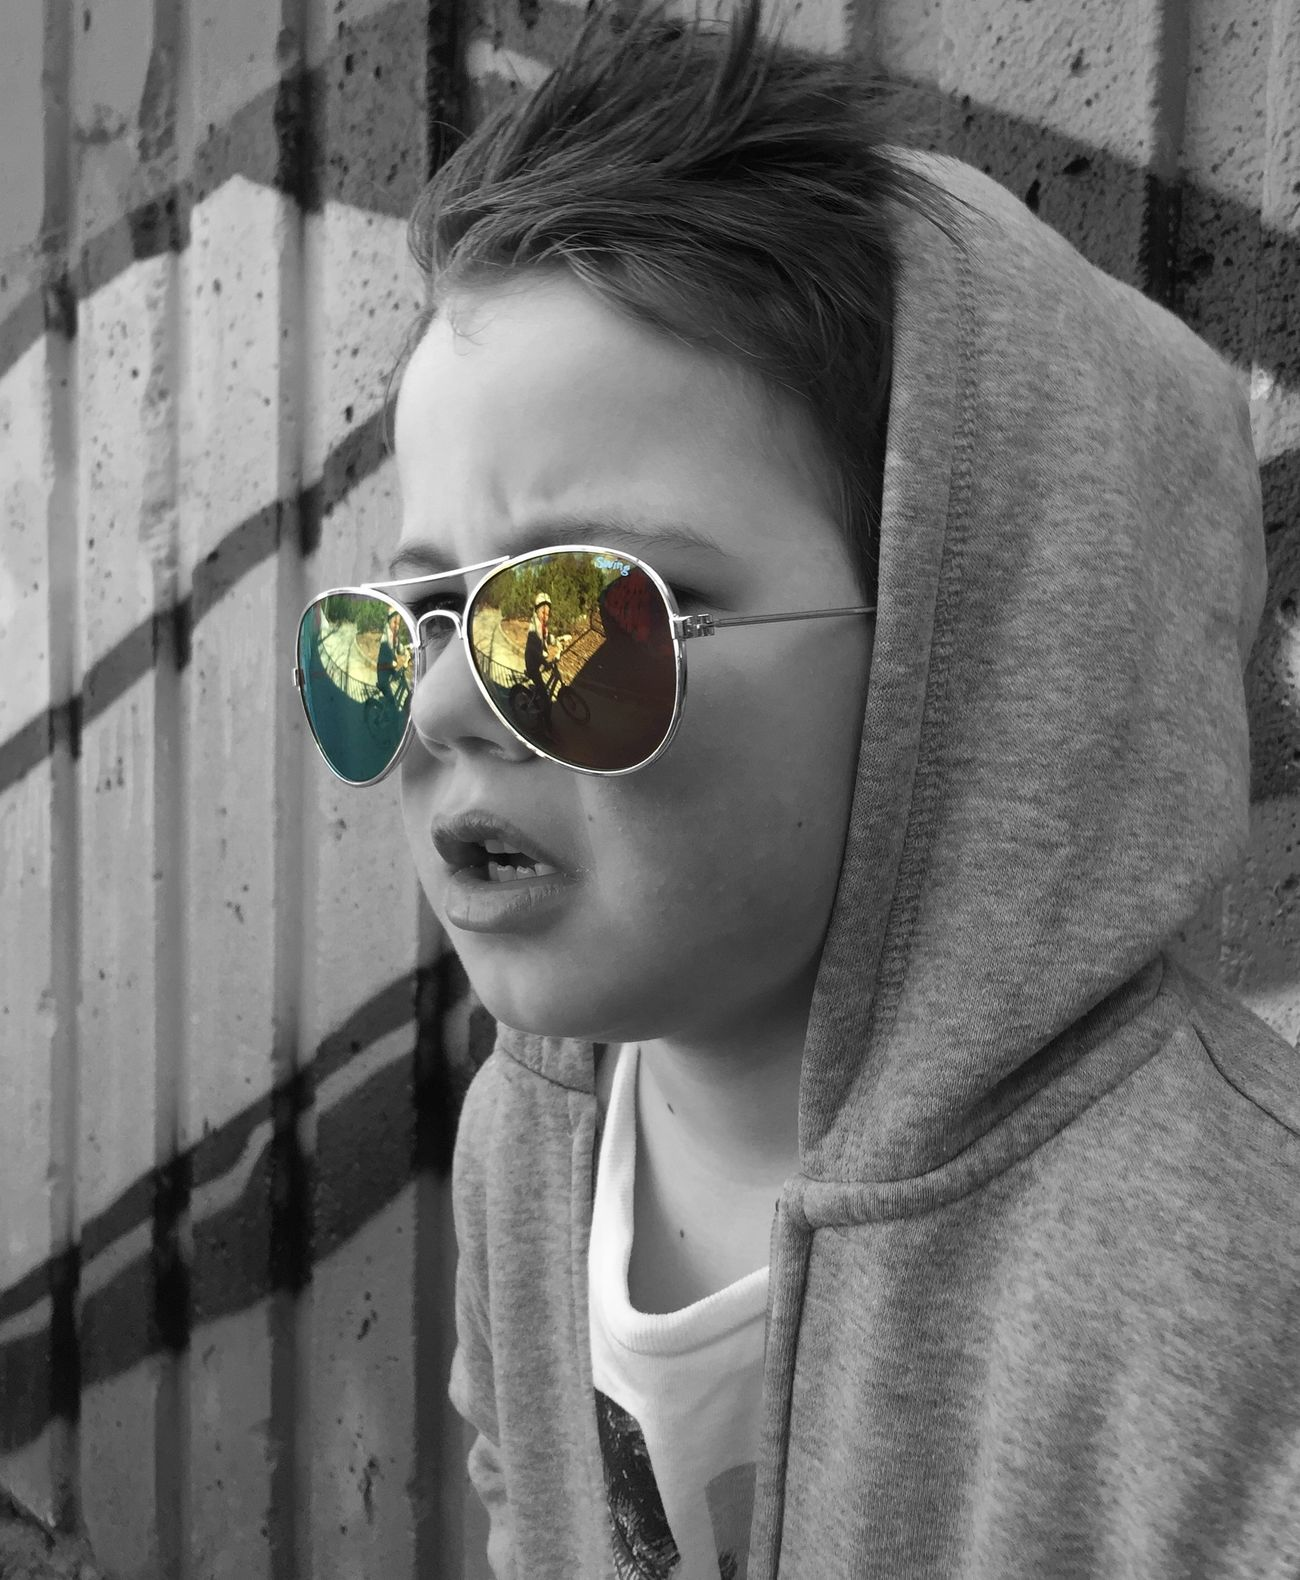 Modeling Model Boy Portrait Graffeti Iphoneonly IPhoneography